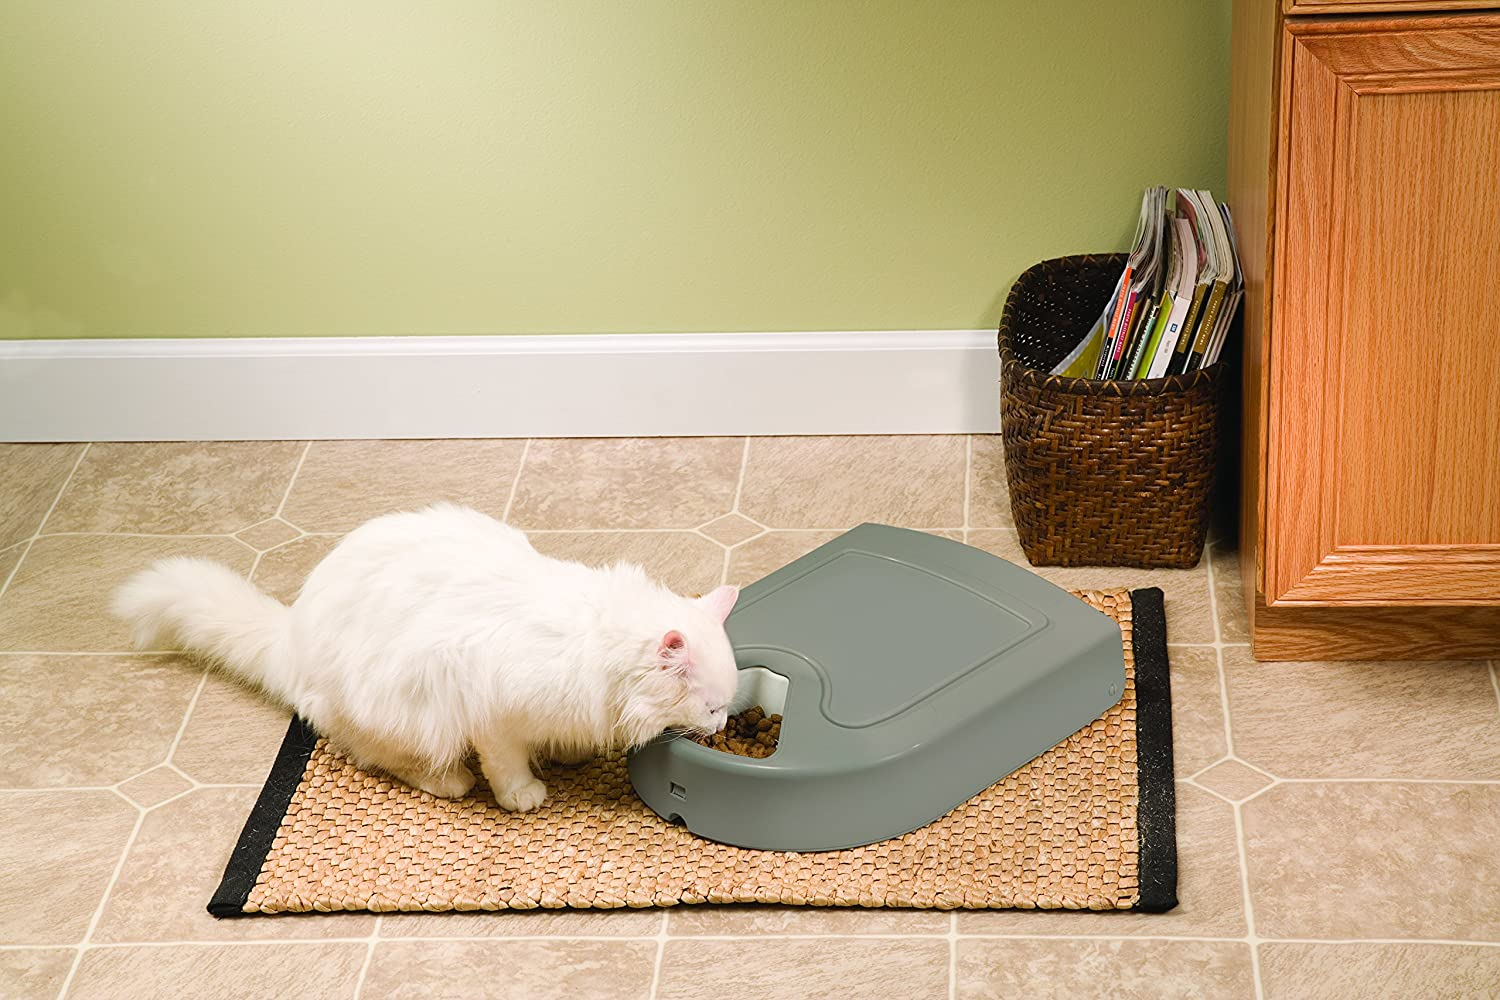 This is arguably the best automatic cat feeder within this price range.